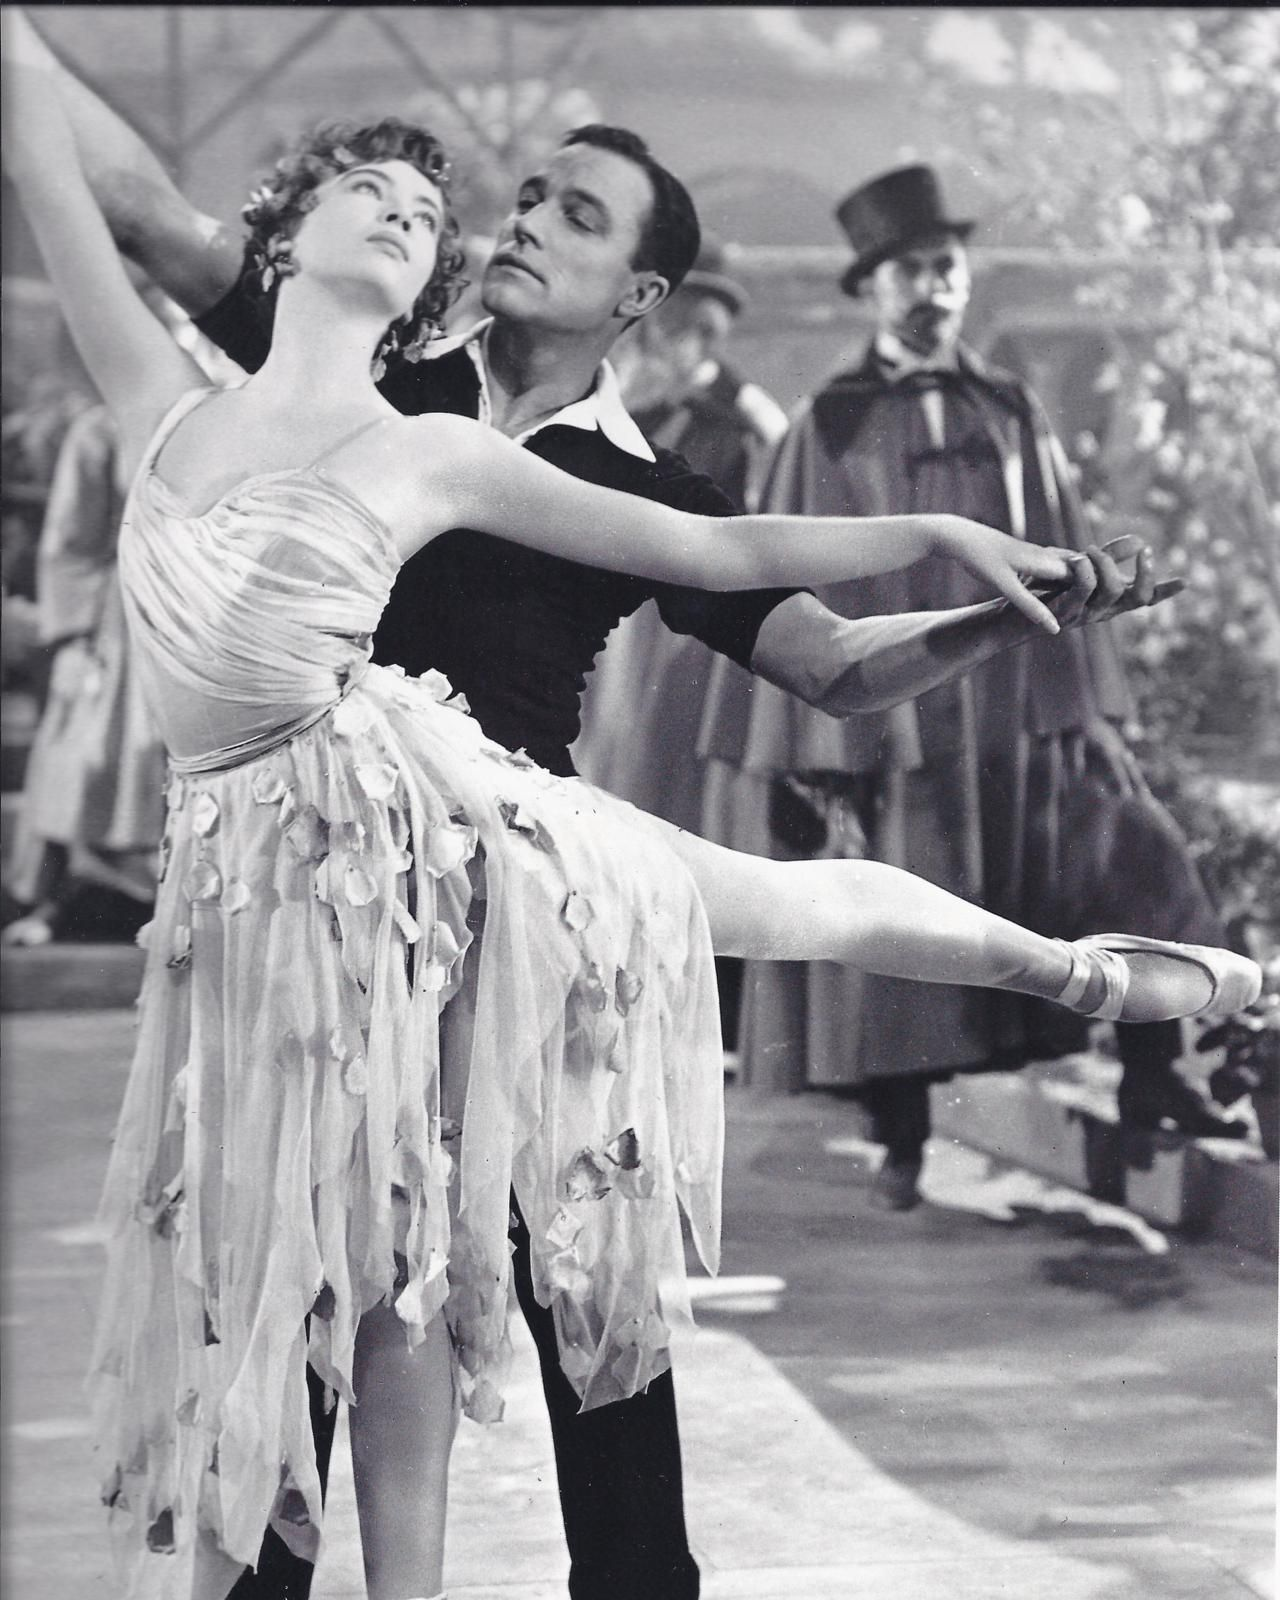 gene kelly + leslie caron = perfection  And her dress is beautiful. I bet it looks amazing when she's dancing.